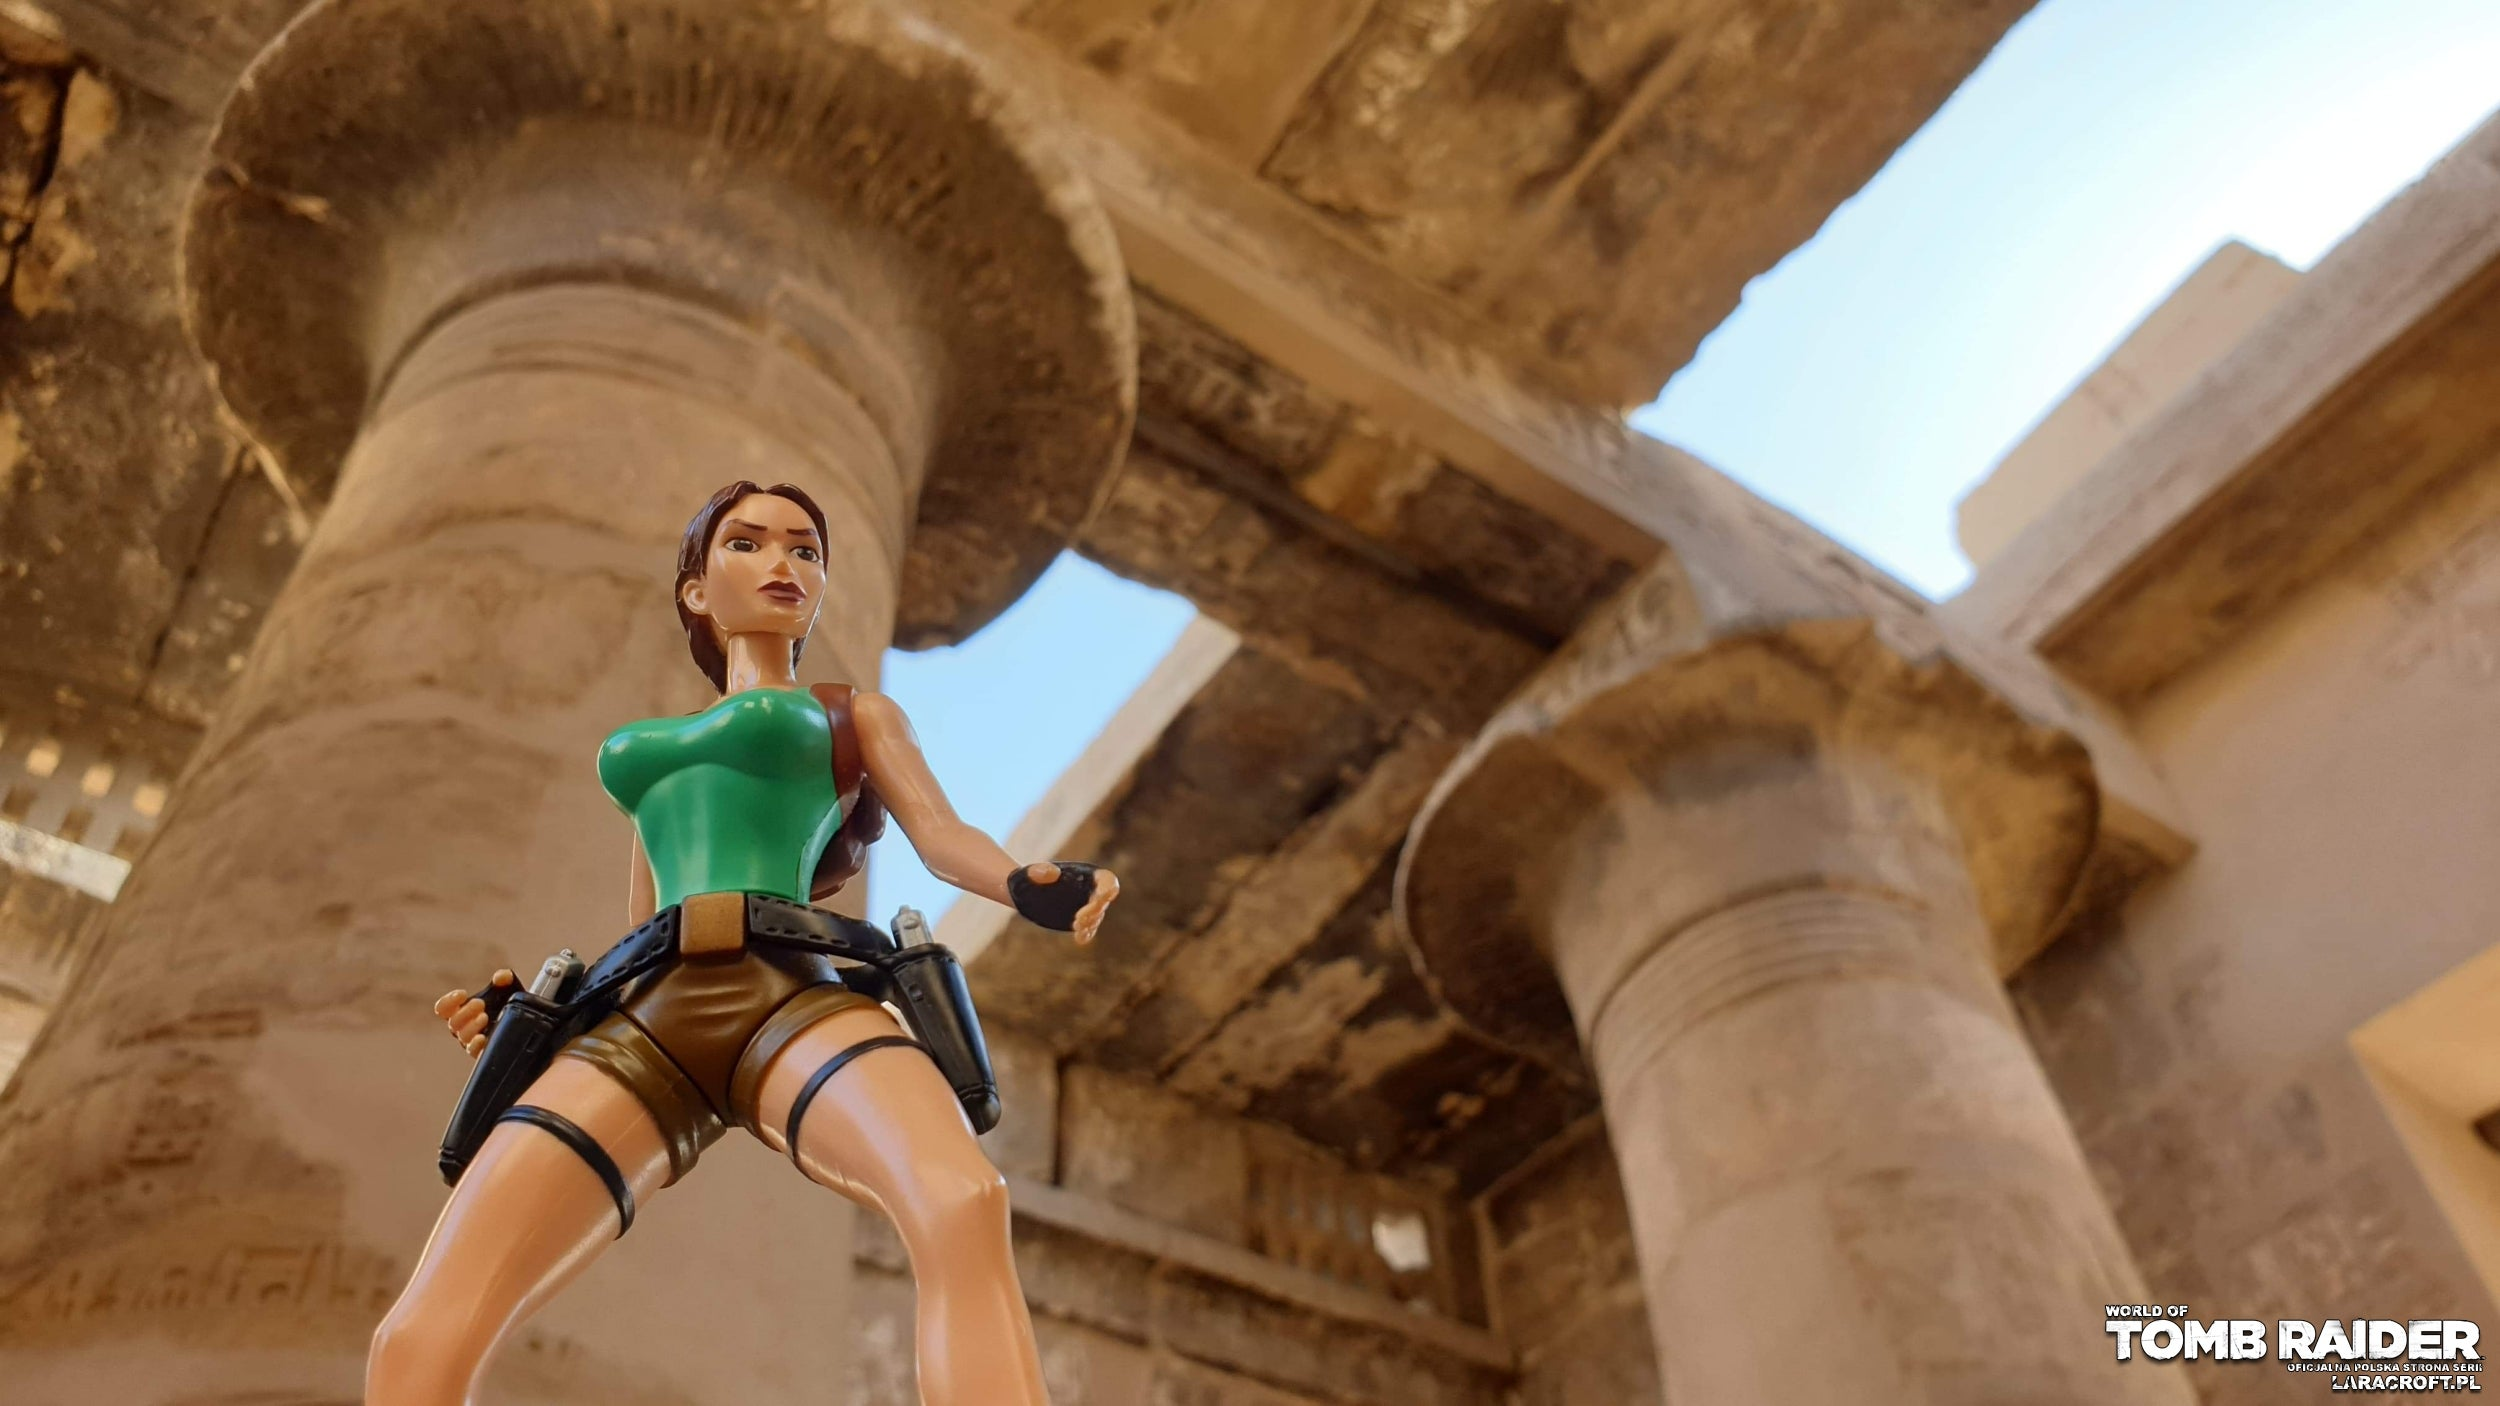 A photograph of a Lara Croft figure in front of the Great Hypostyle Hall in Egypt